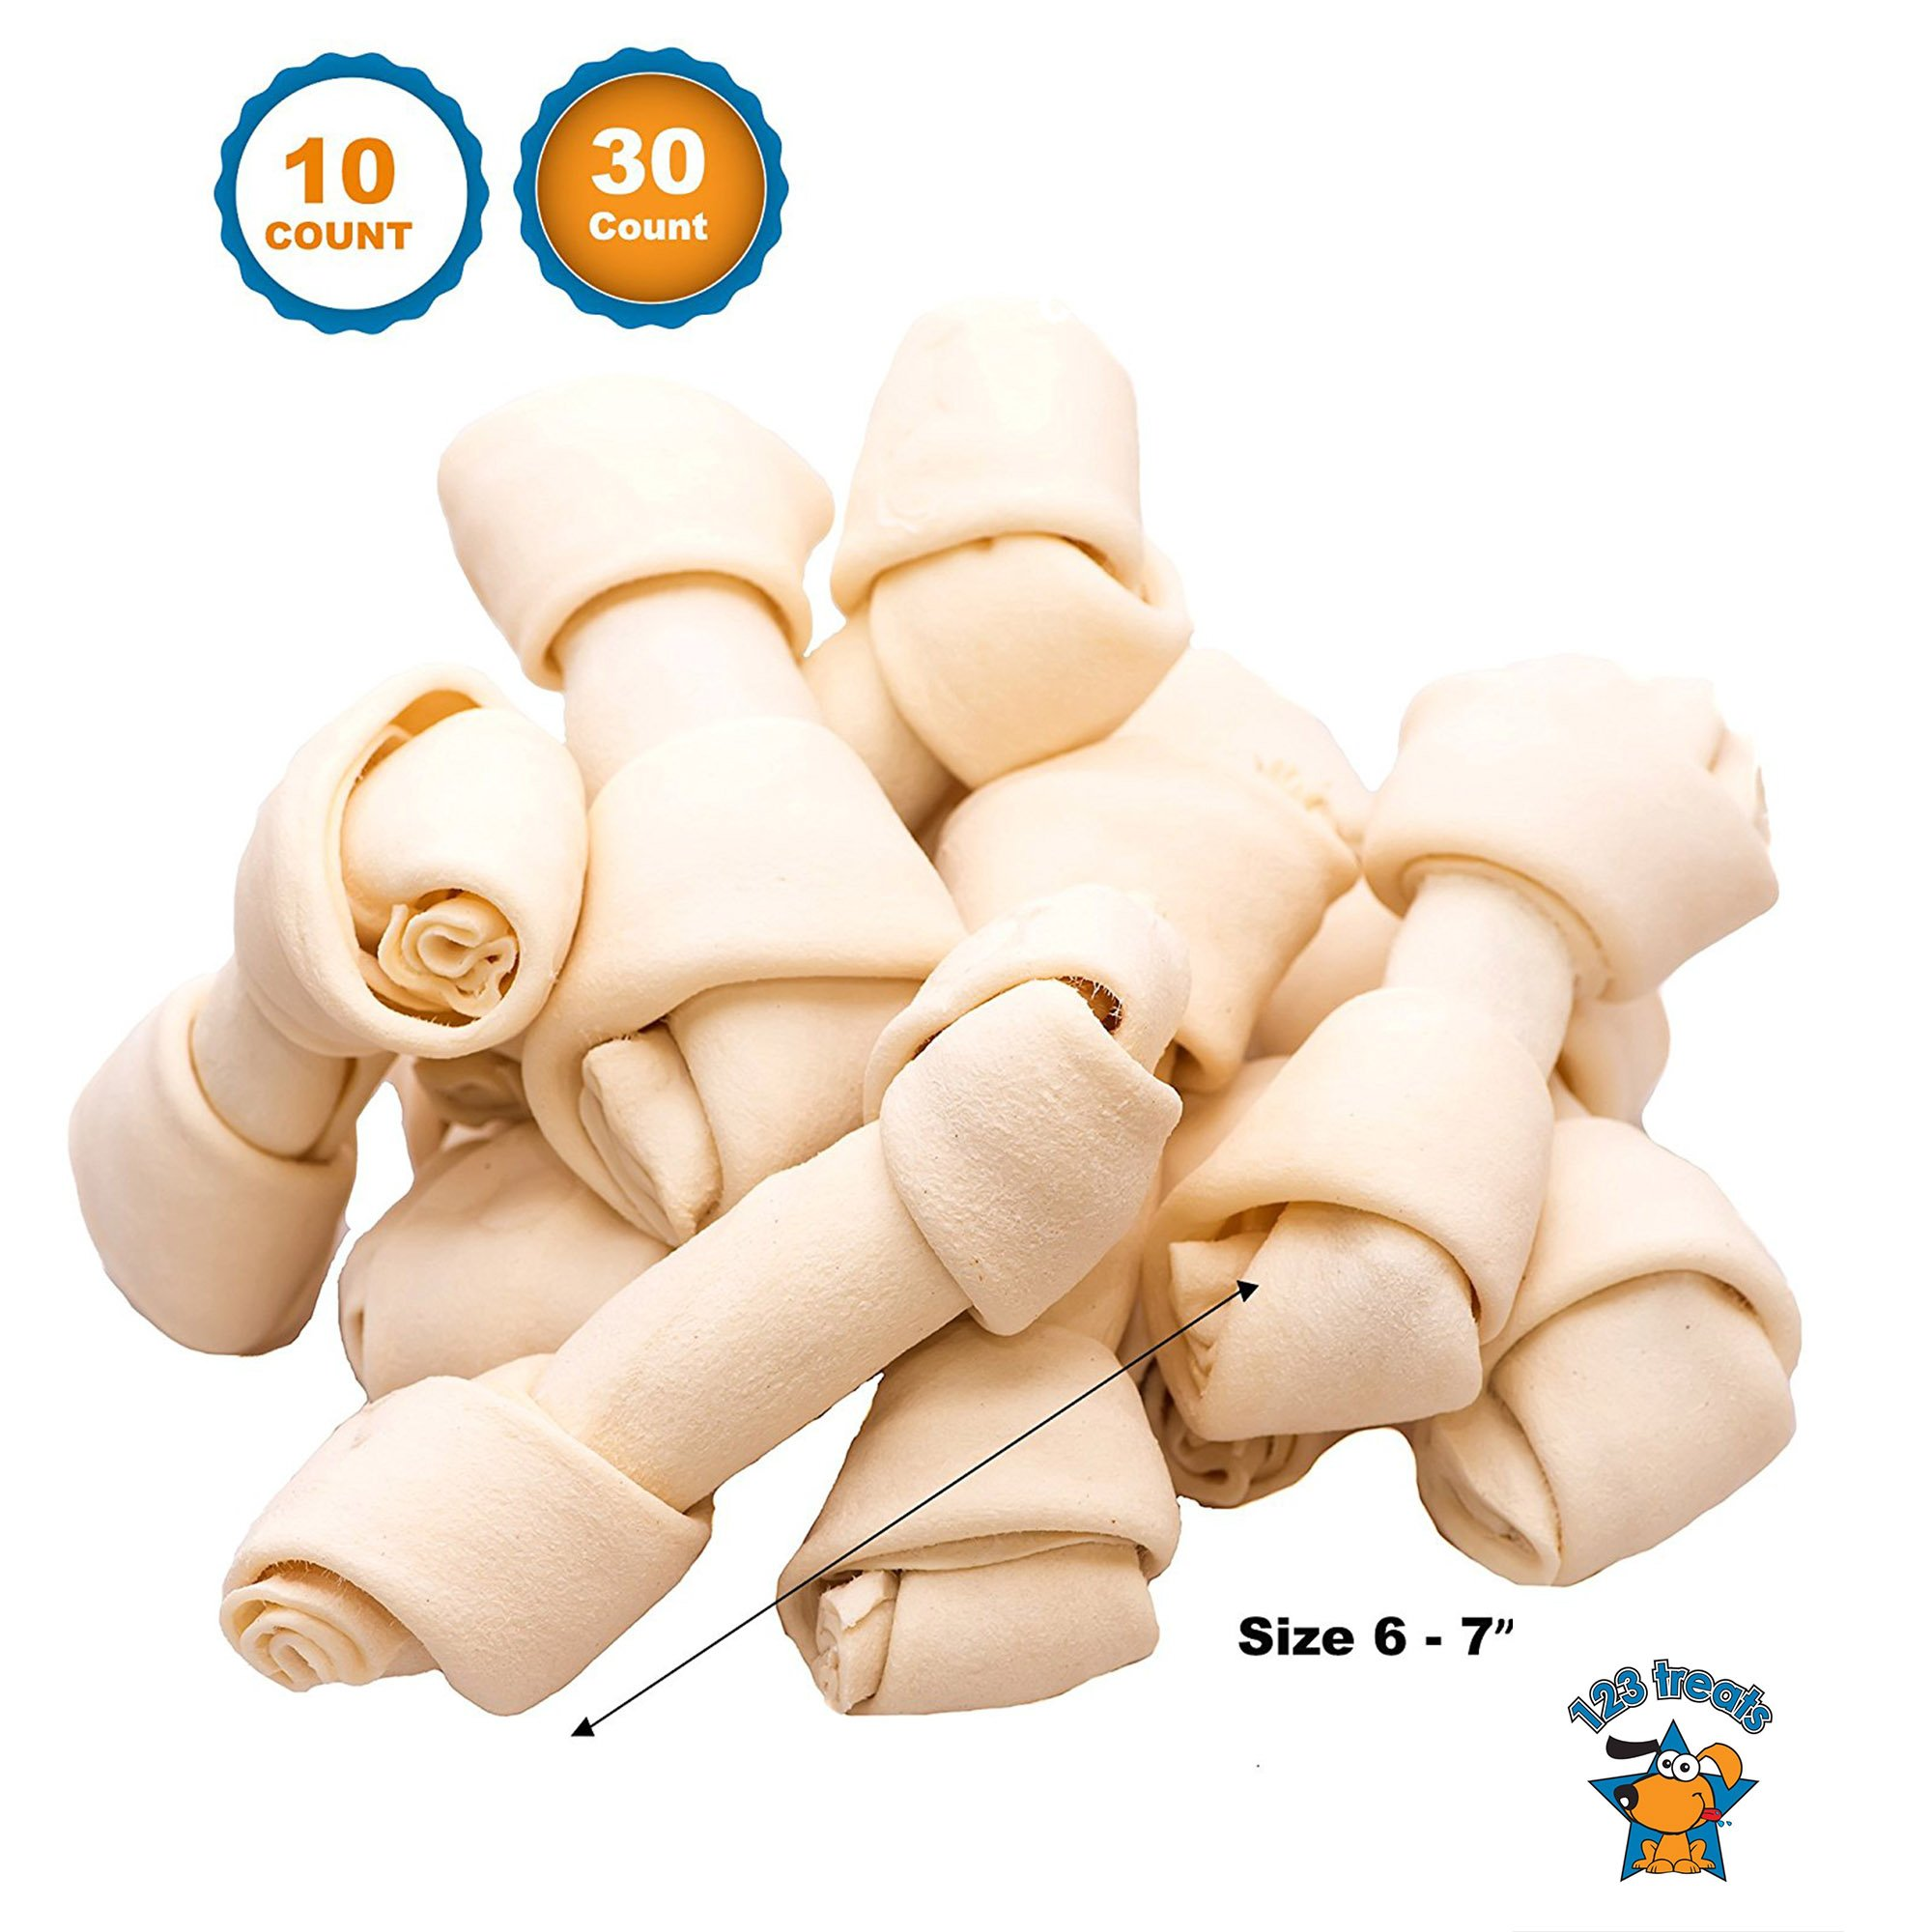 123 Treats - Dog Rawhide Chews Bones for Medium to Large Dogs 6-7'' (30 Count) 100% Natural Premium Bulk Treats by 123 Treats